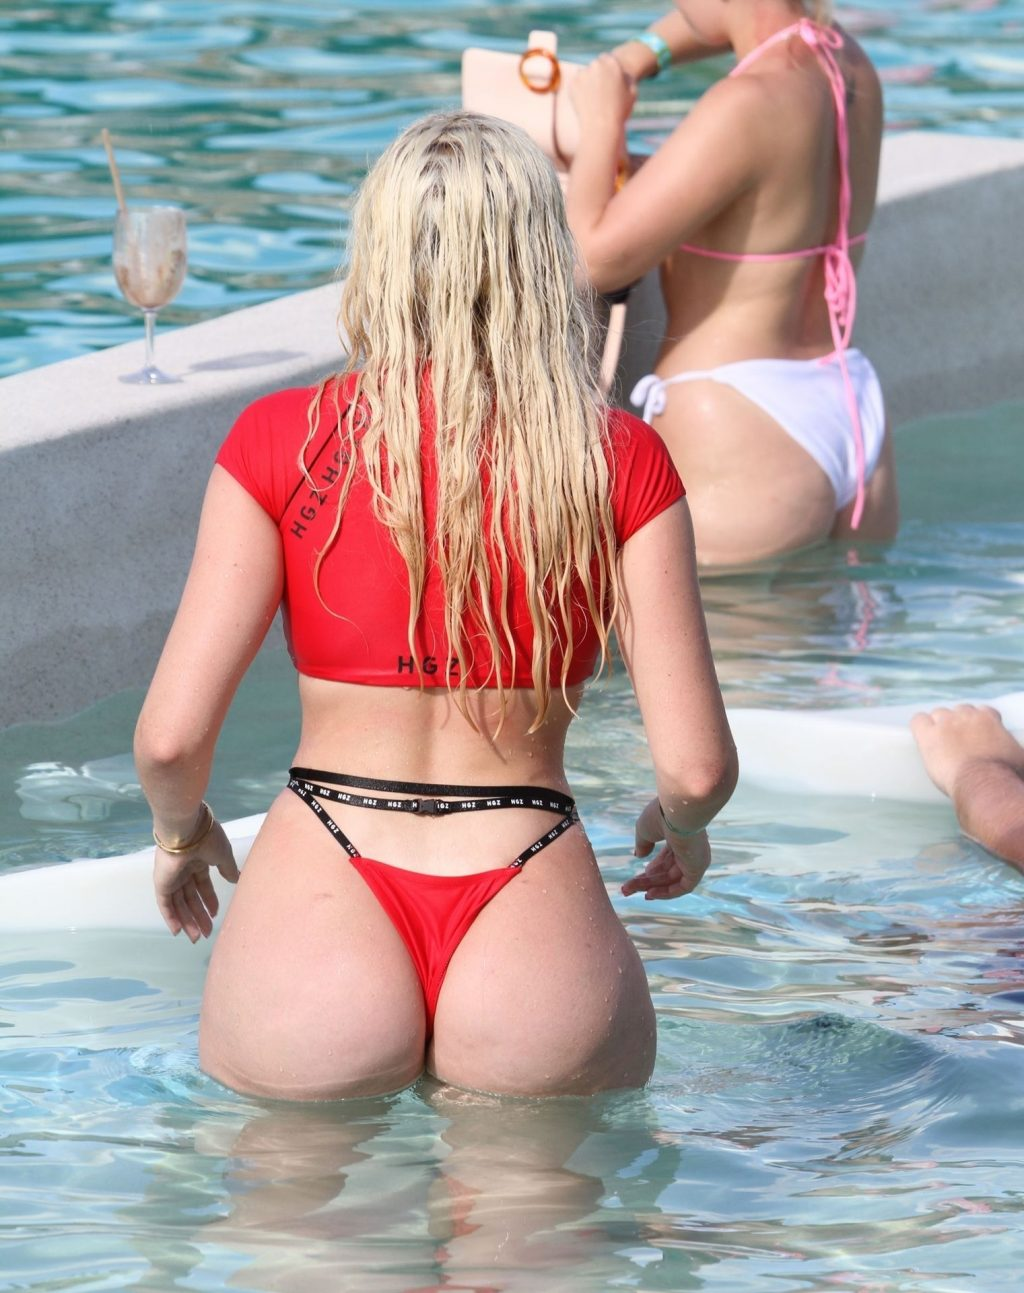 Chloe Ferry Shows Off Her Voluptuous Figure in Thailand (29 Photos)